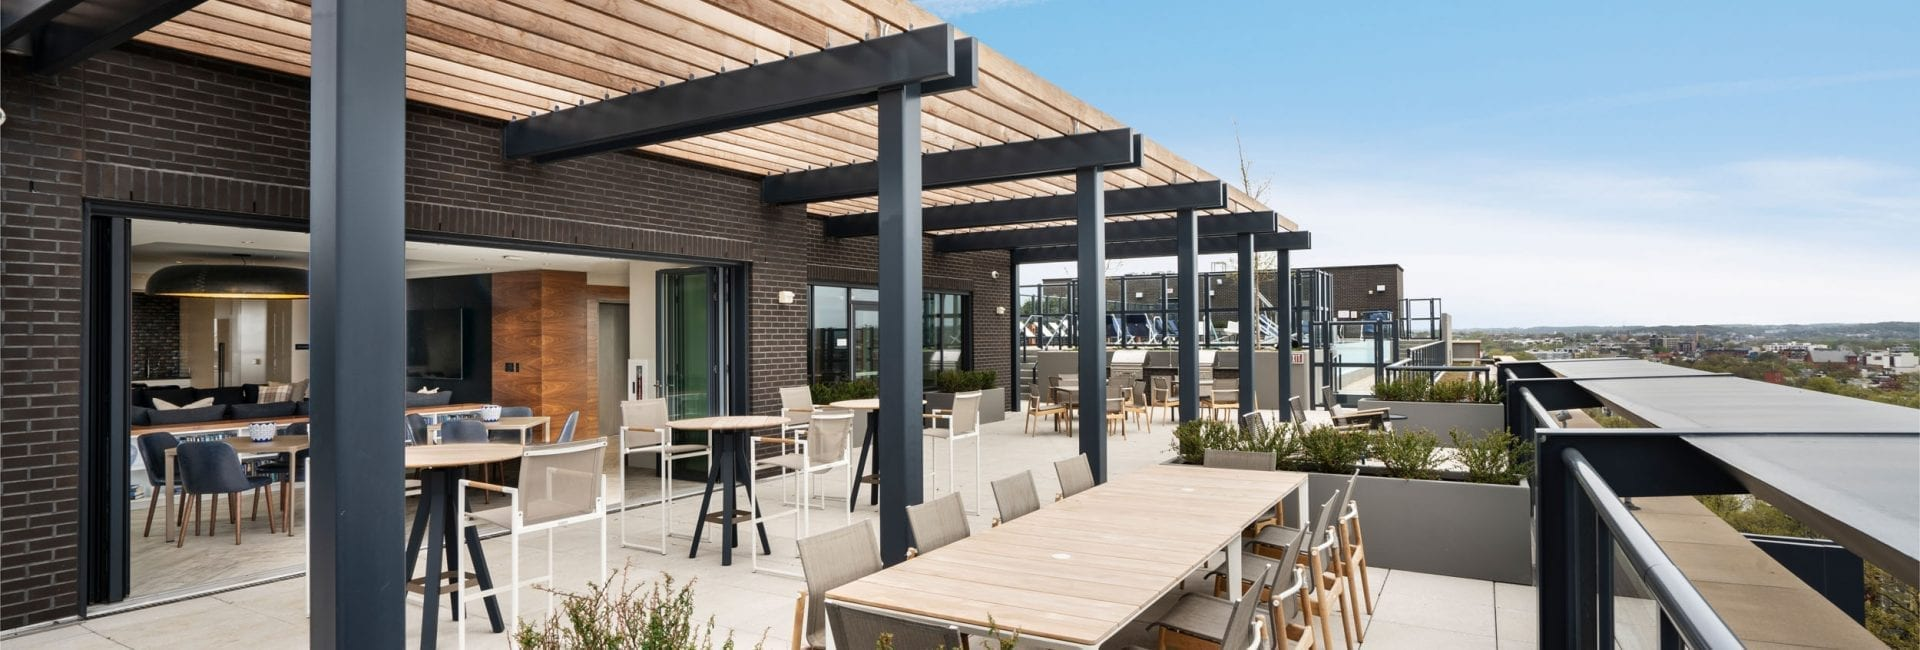 Rooftop at Union Place with seating areas, fire pits, and grilling stations